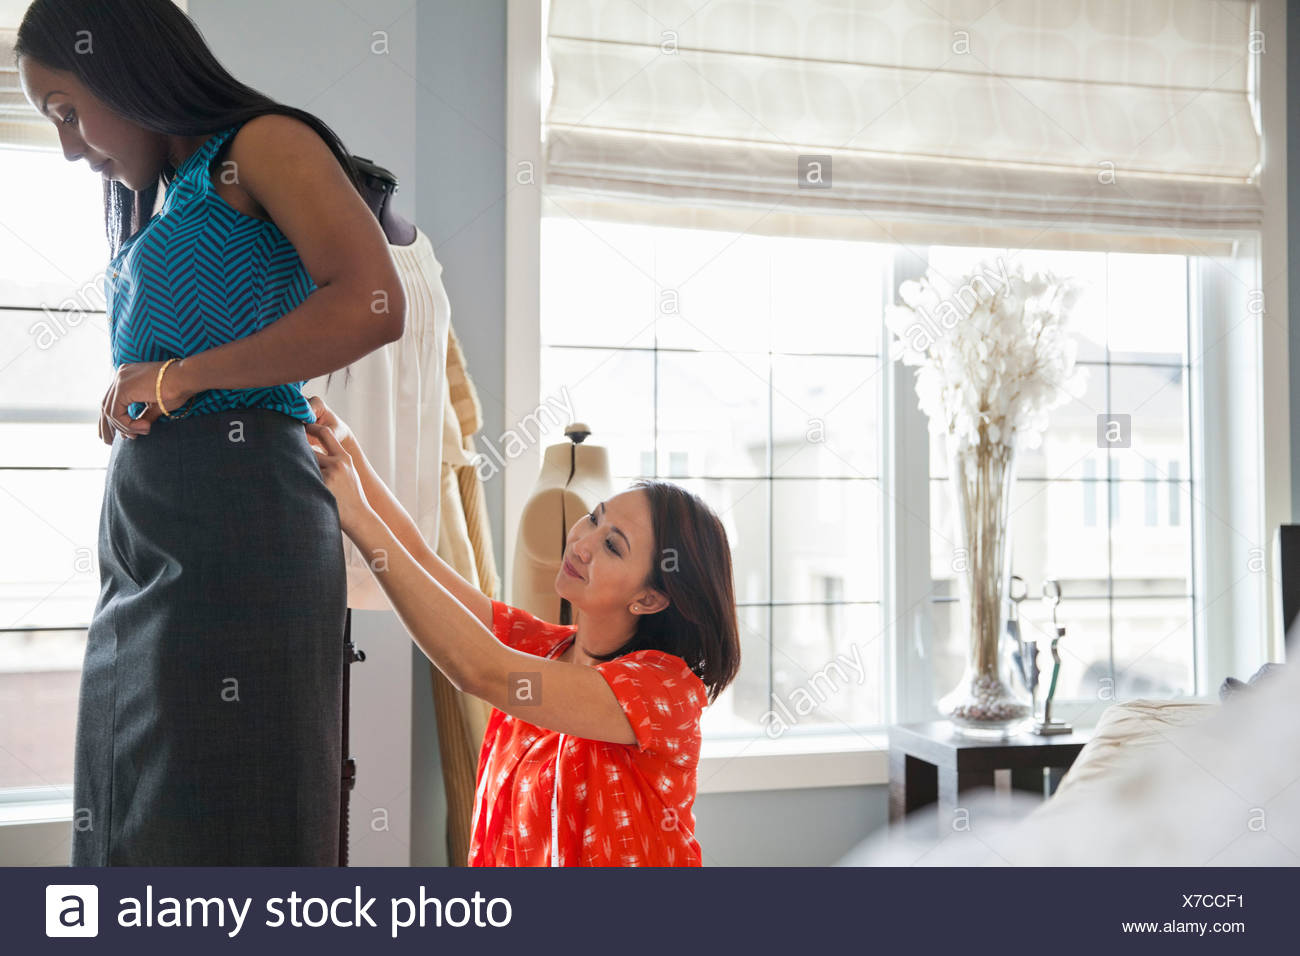 Female seamstress doing alterations in home studio - Stock Image